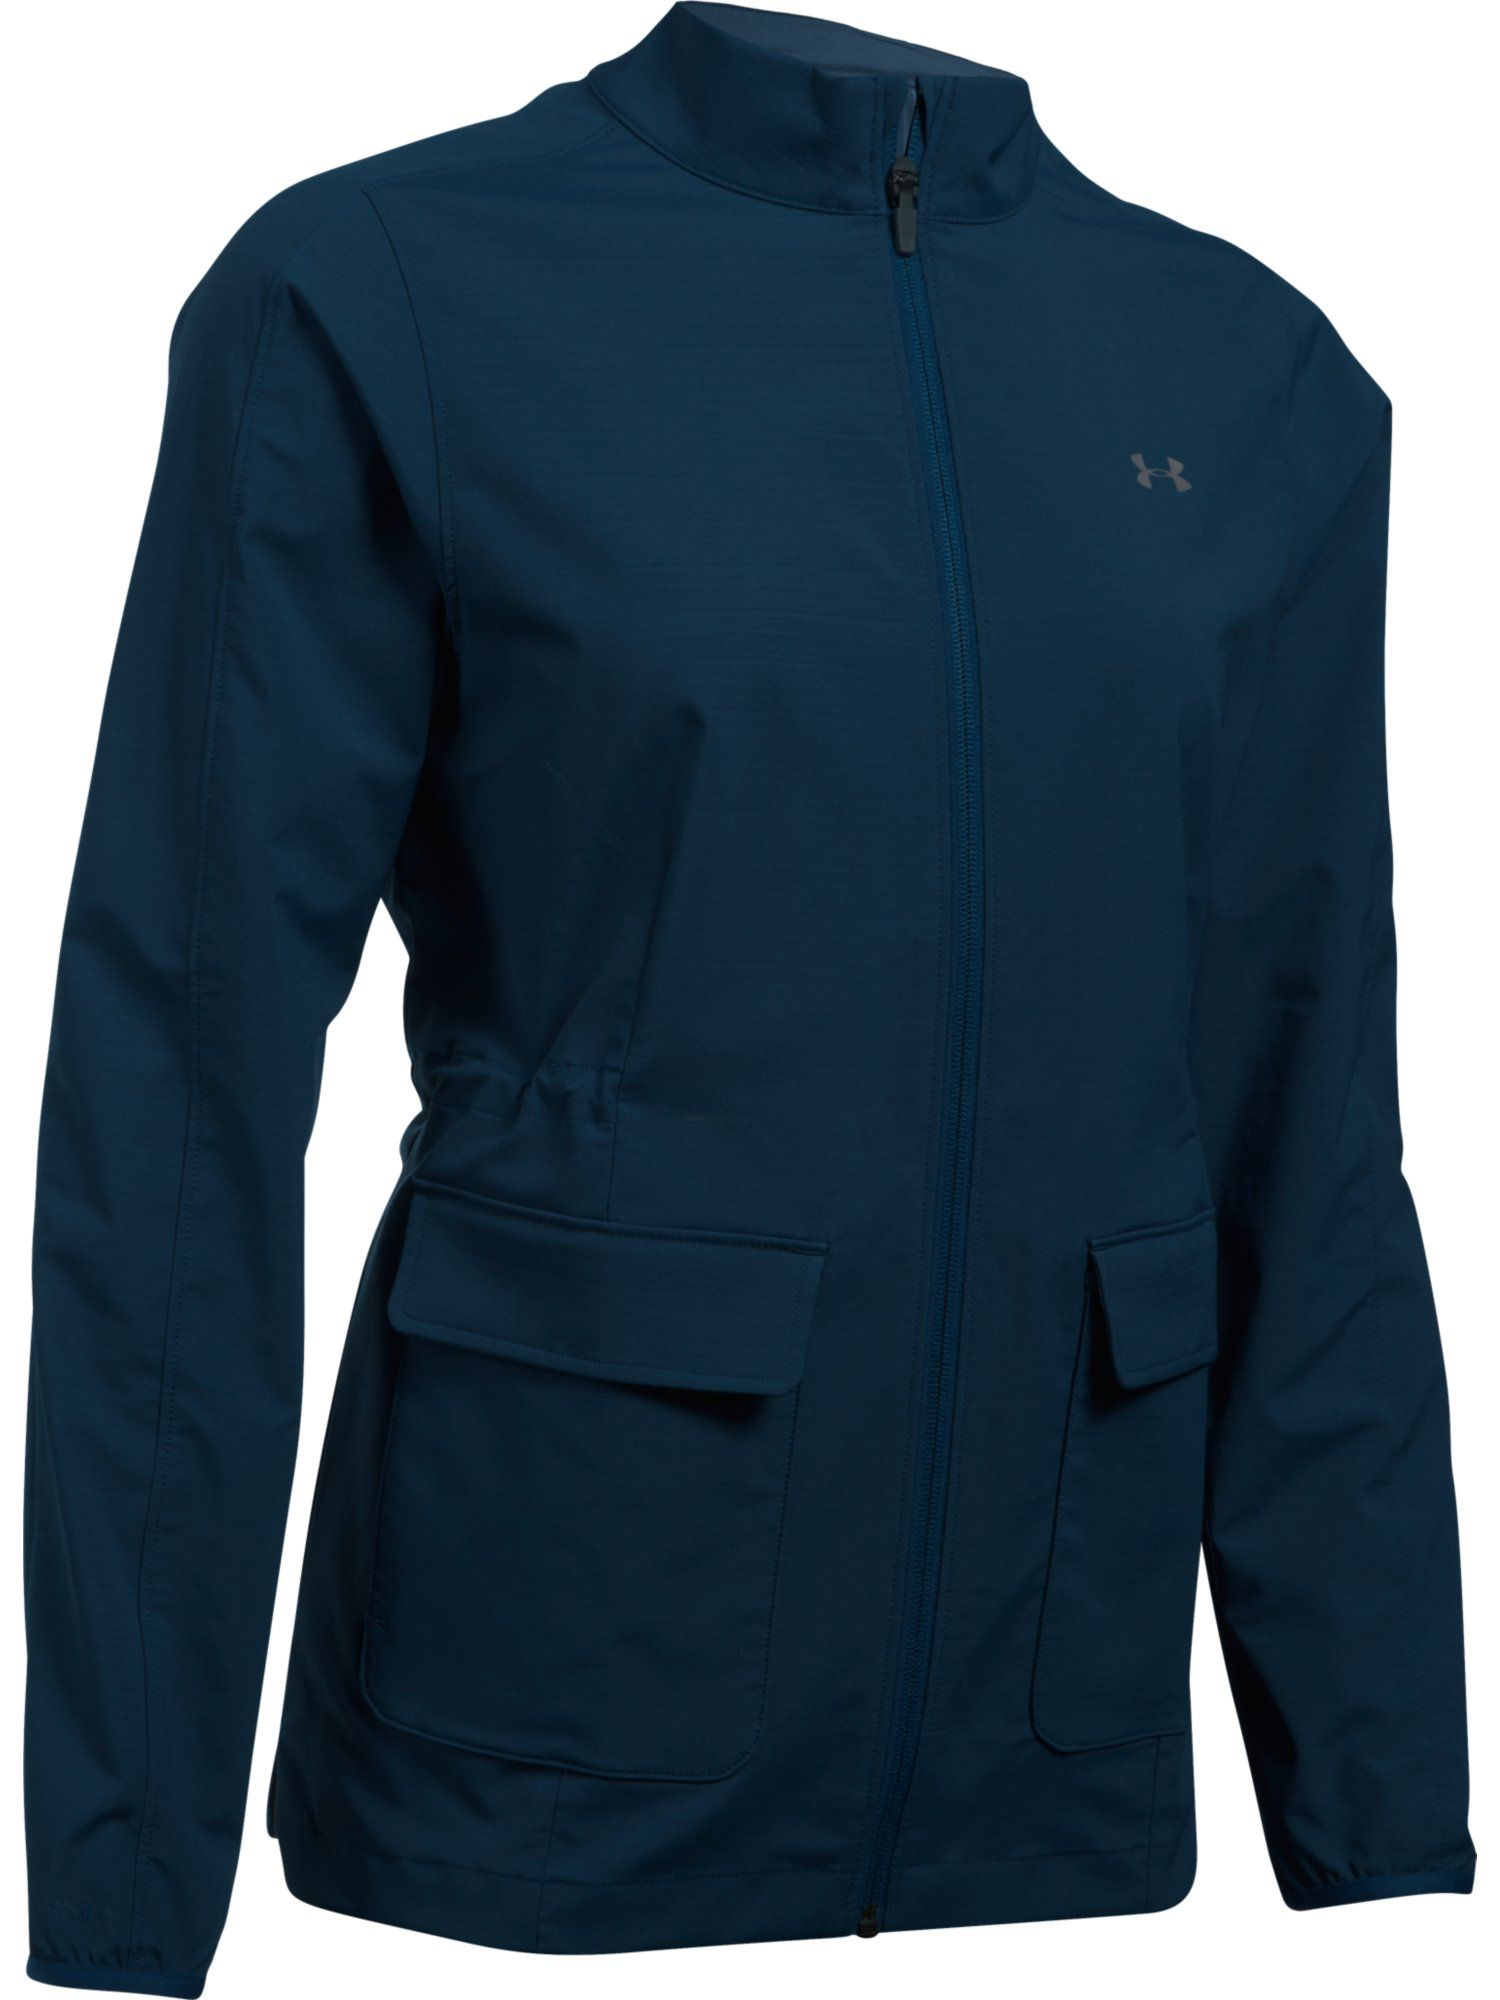 Under Armour Storm Windstrike Full Zip Jacket, Blue